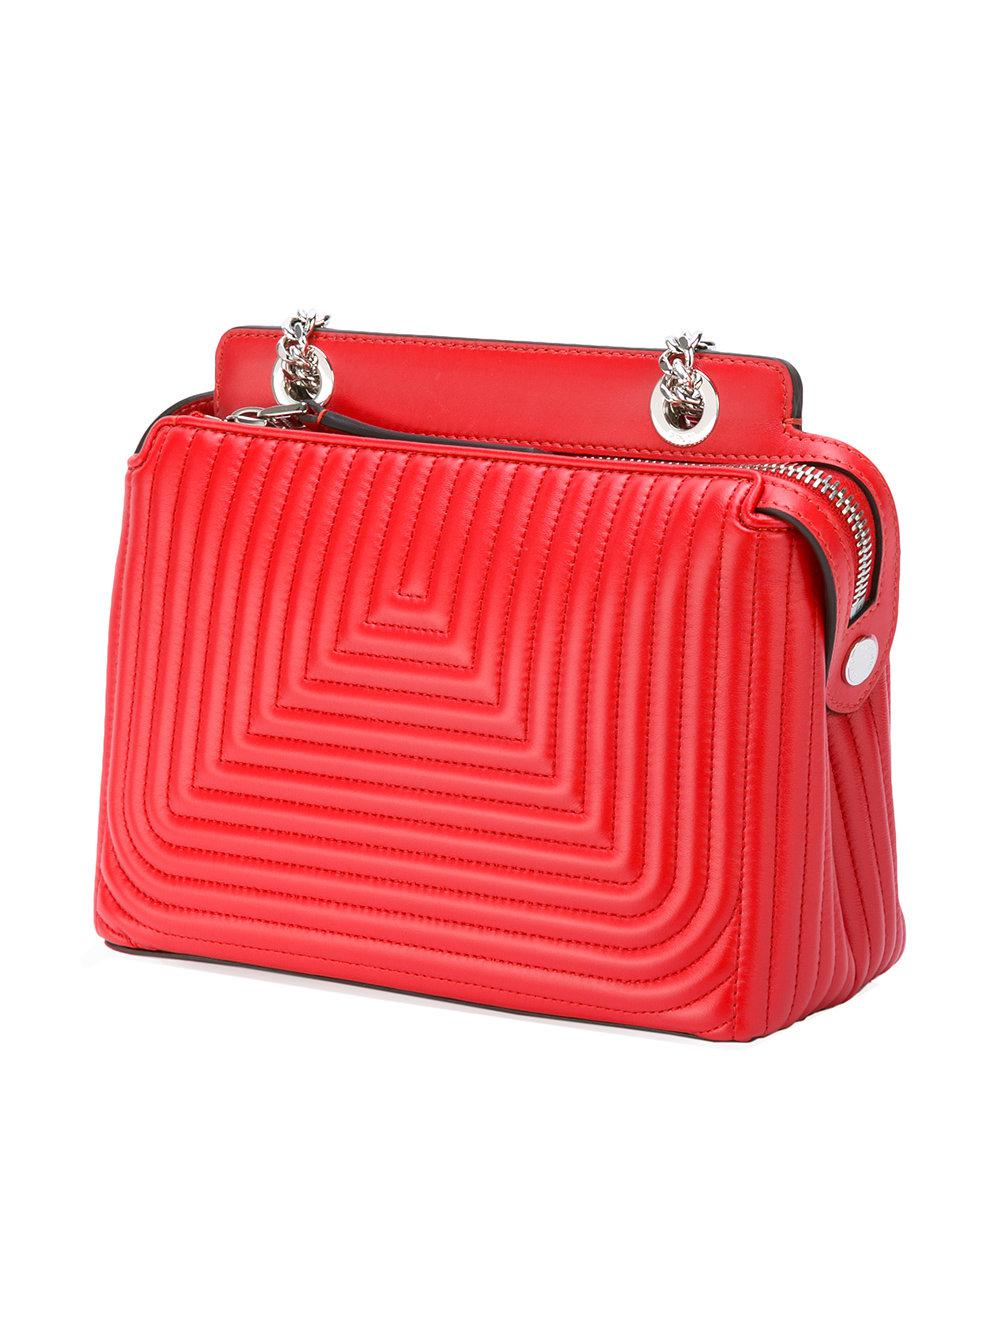 f969acca2a13 Lyst - Fendi Dotcom Click Shoulder Bag in Red